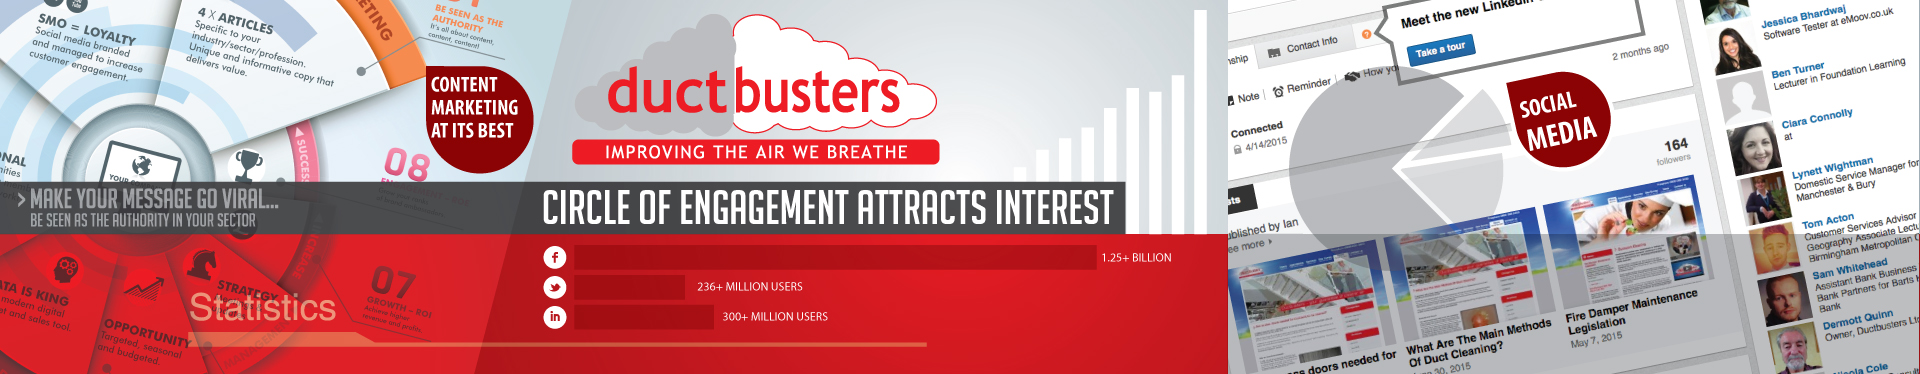 ductbusters_CS_3